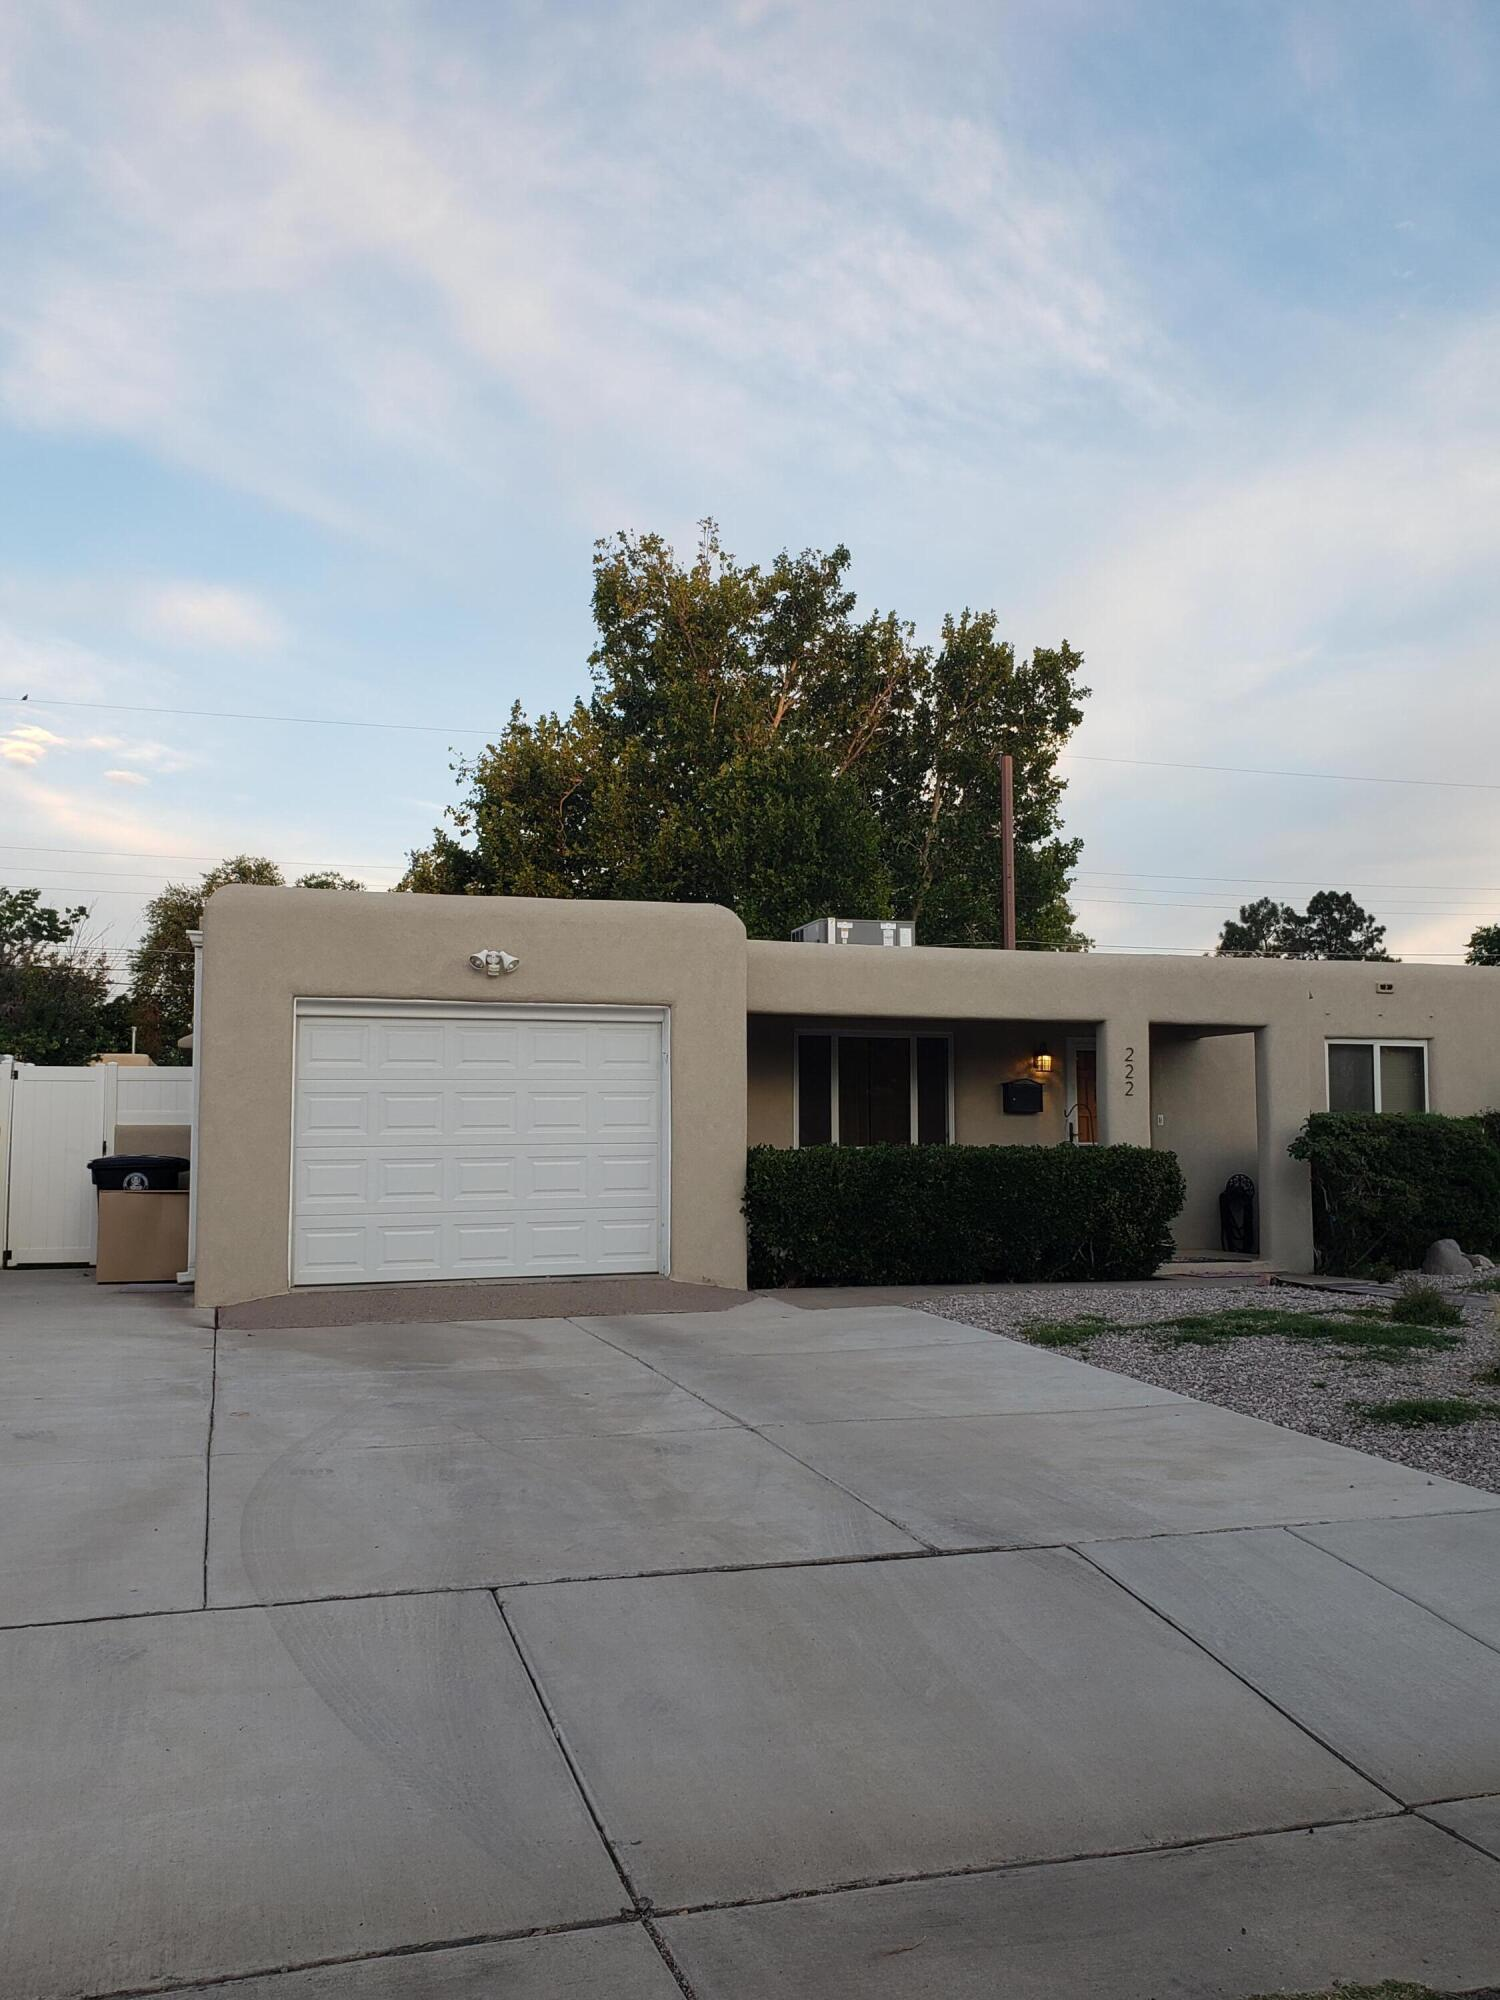 Opportunity to own a charming,  well maintained, upgraded Nob Hill Gem! Wood floors, fully fenced large backyard with vinyl fence (2019). TPO membrane roof installed in 2015, Sewer Line replaced, refrigerated AC 1 year old Rheem combo unit! Tankless water heater 2019, 20x13 back patio, made with low maintenance steel 2019, french doors 2019, Reverse osmosis system, this little house really shines with pride of ownership, not to mention new stucco and  with upgraded windows! 1 car garage with separate laundry facilities, garage has door to access side yard, and there is a gate that leads from backyard to the front yard. Steel storage shed stays!